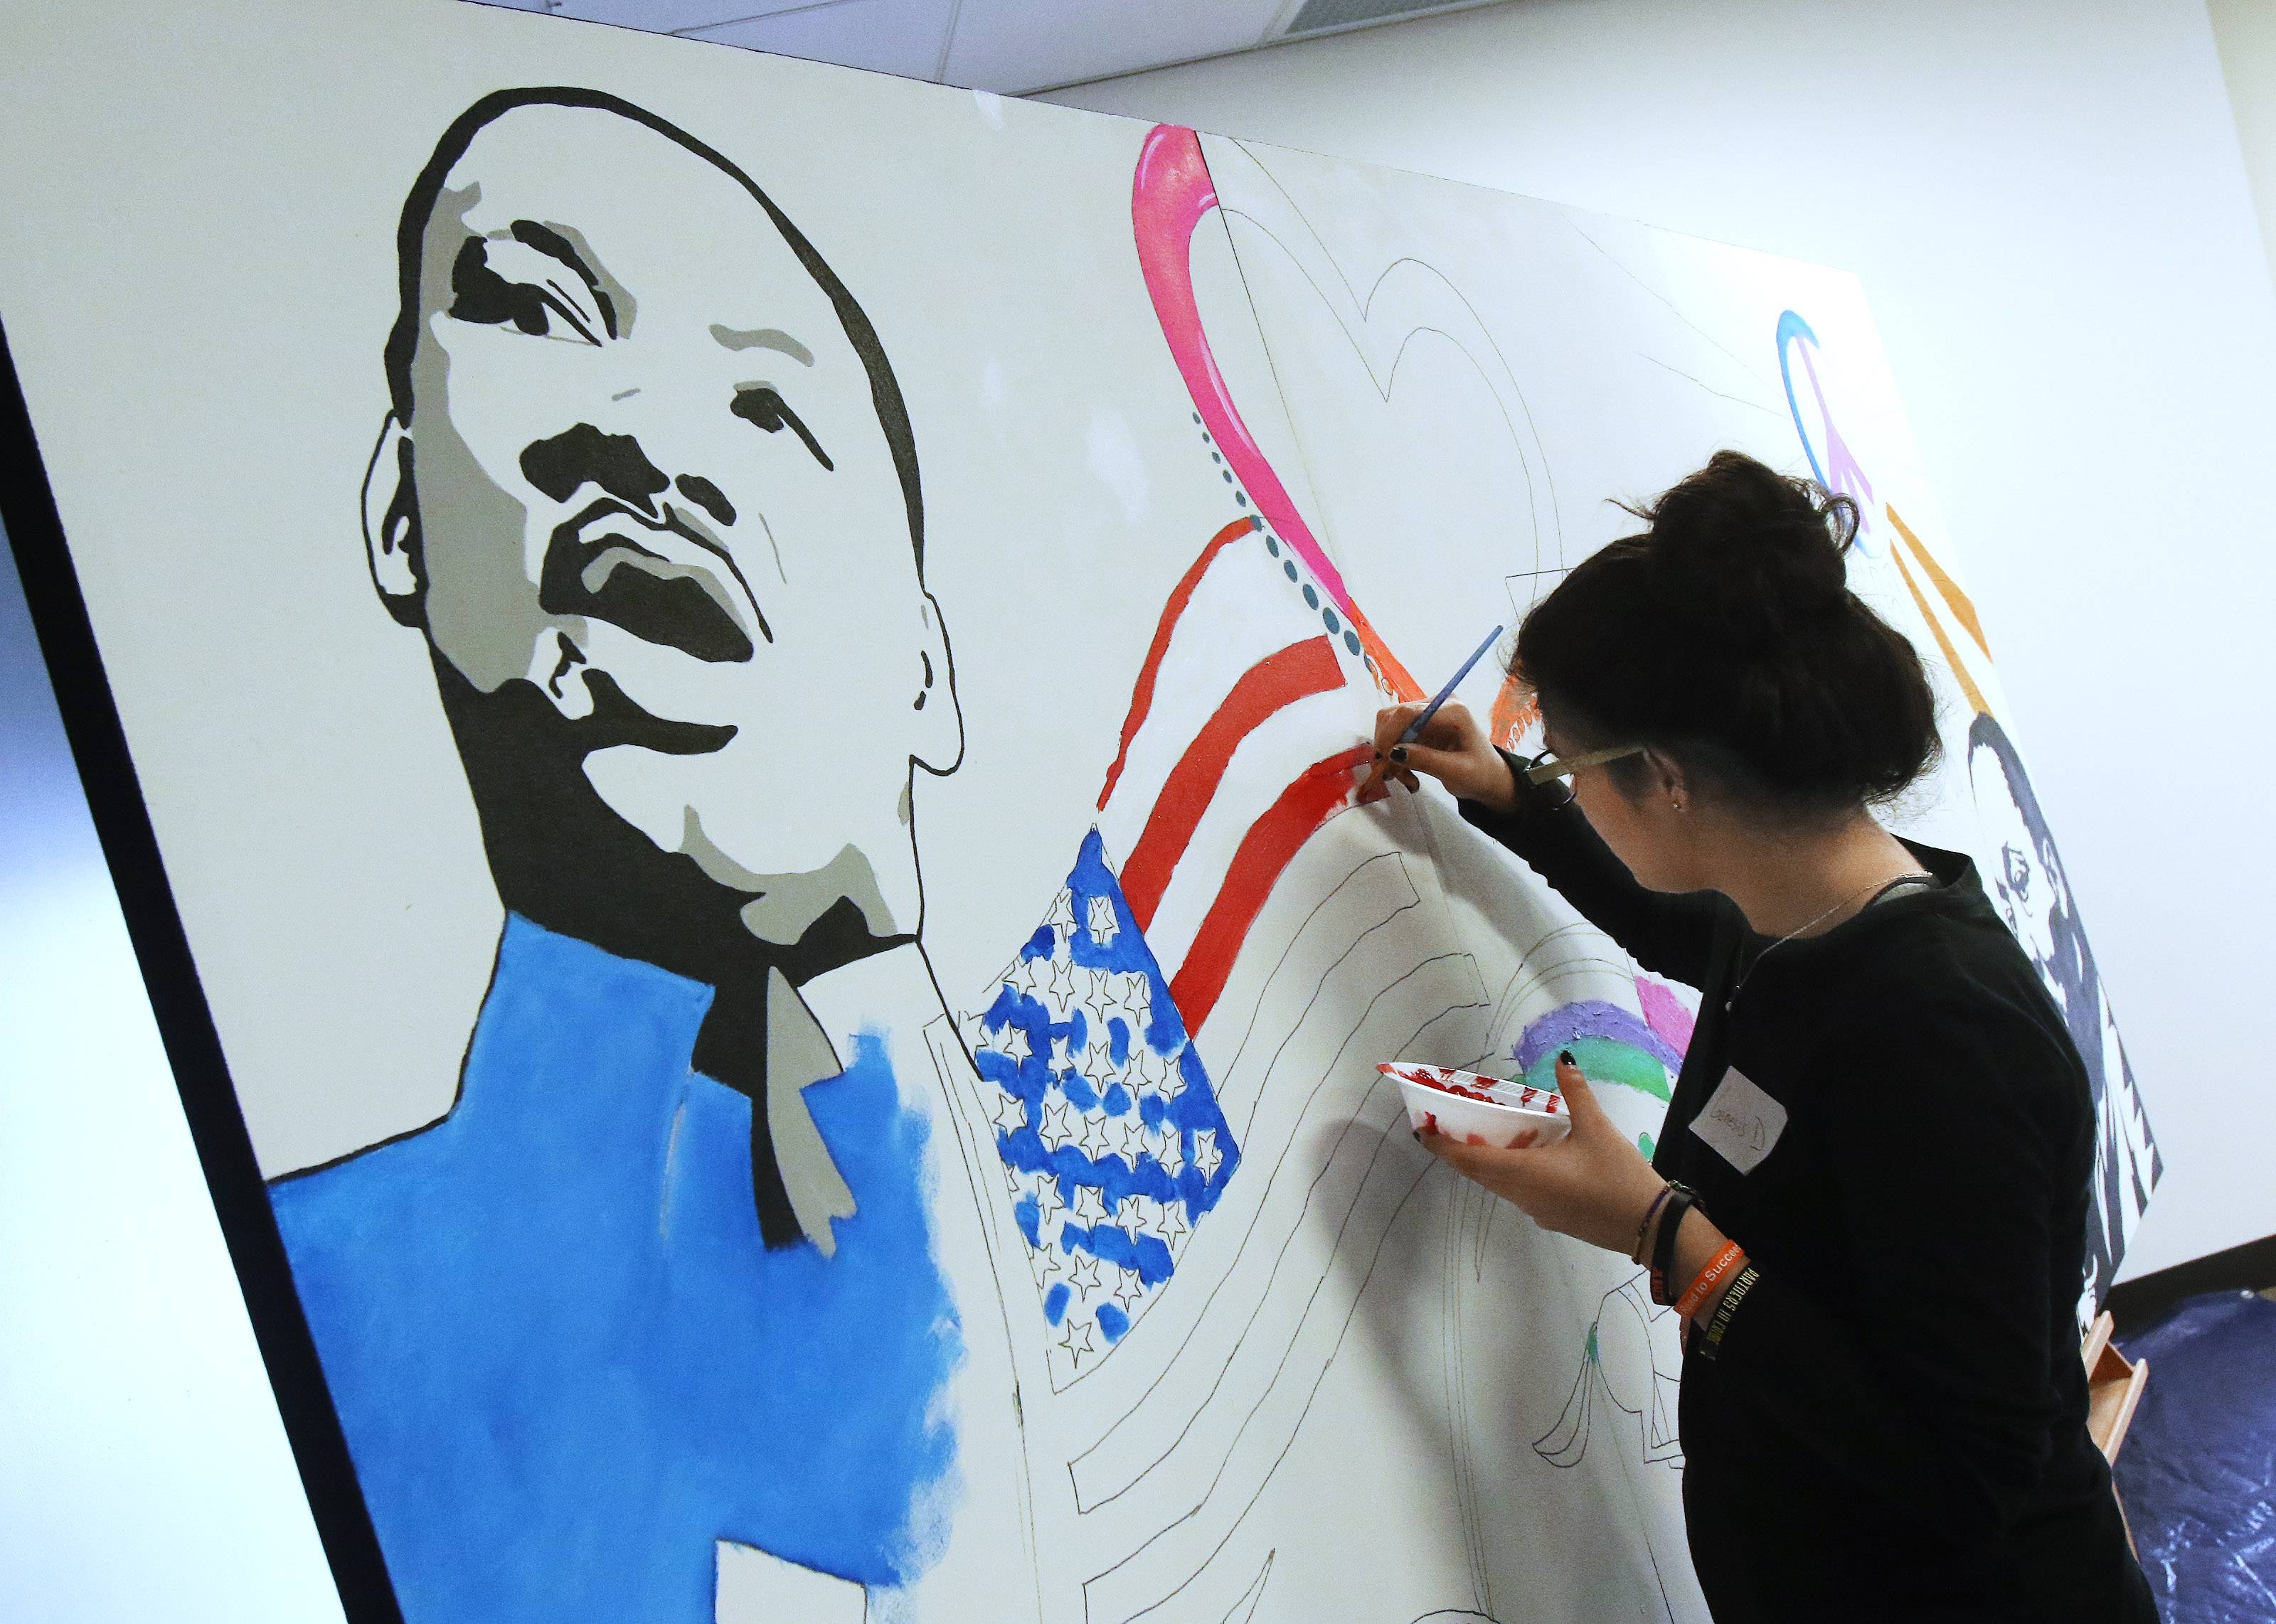 Genesis Davila, 15, of Elk Grove Village helps paint a mural honoring the life and legacy of Martin Luther King Jr. on Monday at the Arlington Heights Memorial Library.